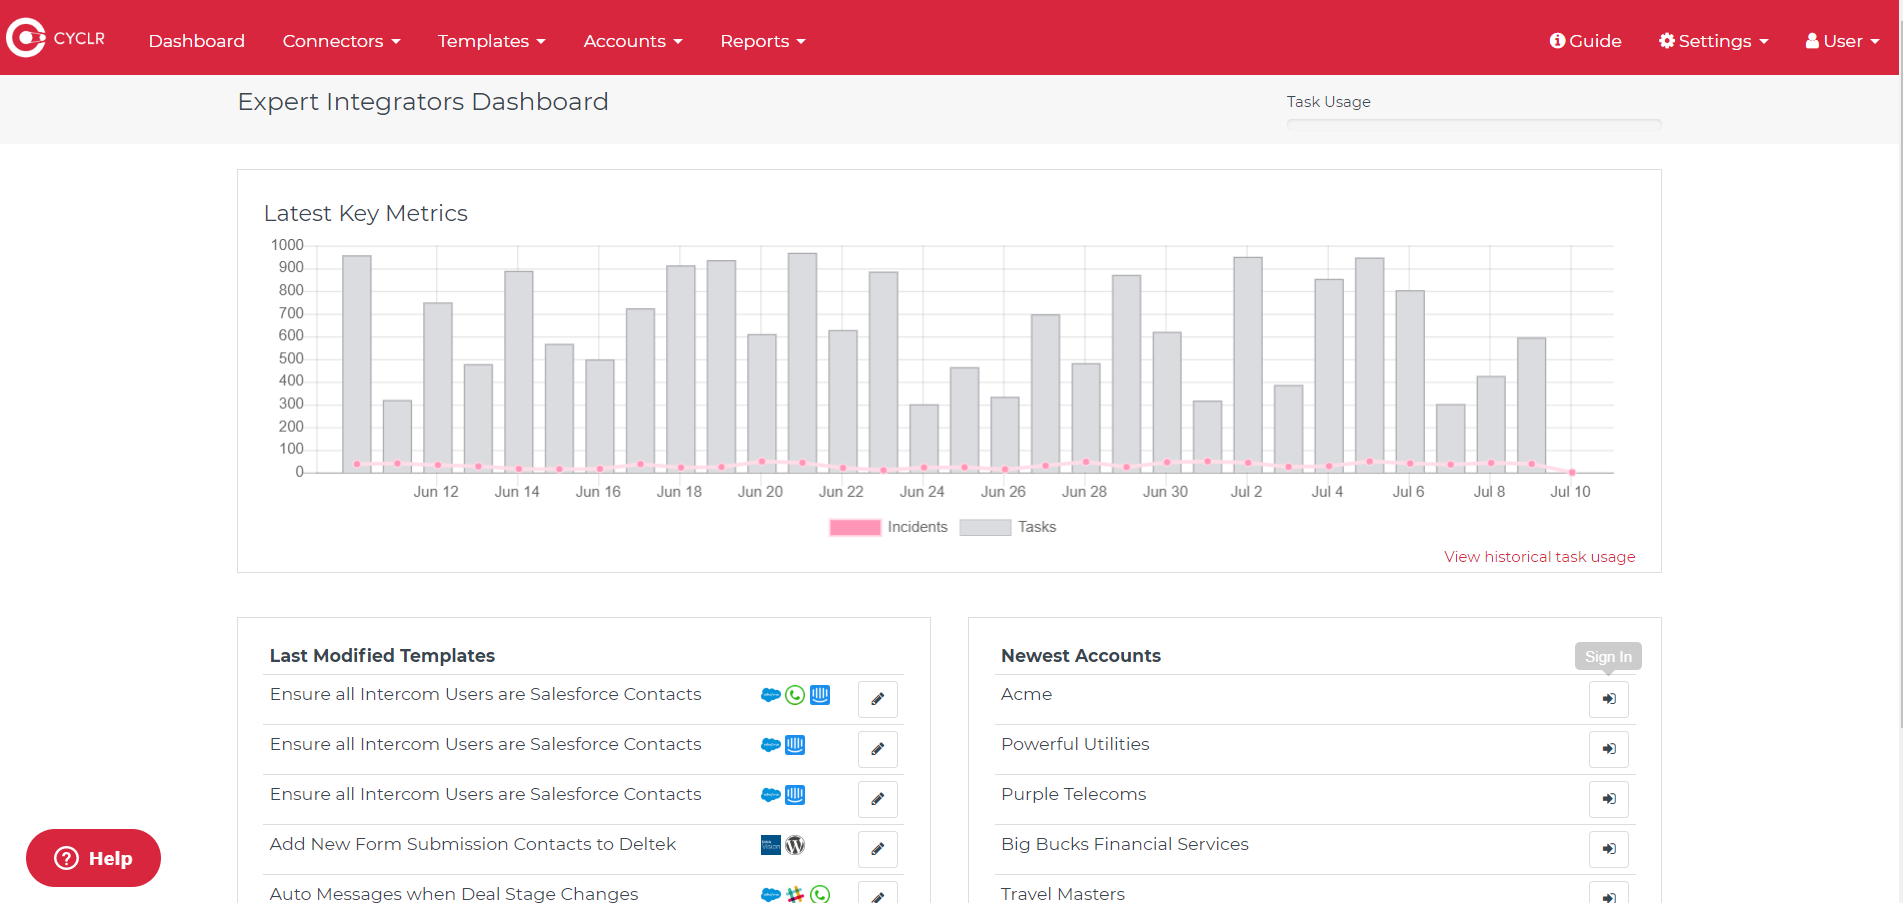 Cyclr gives you a full management console to manage your integrations and user accounts.